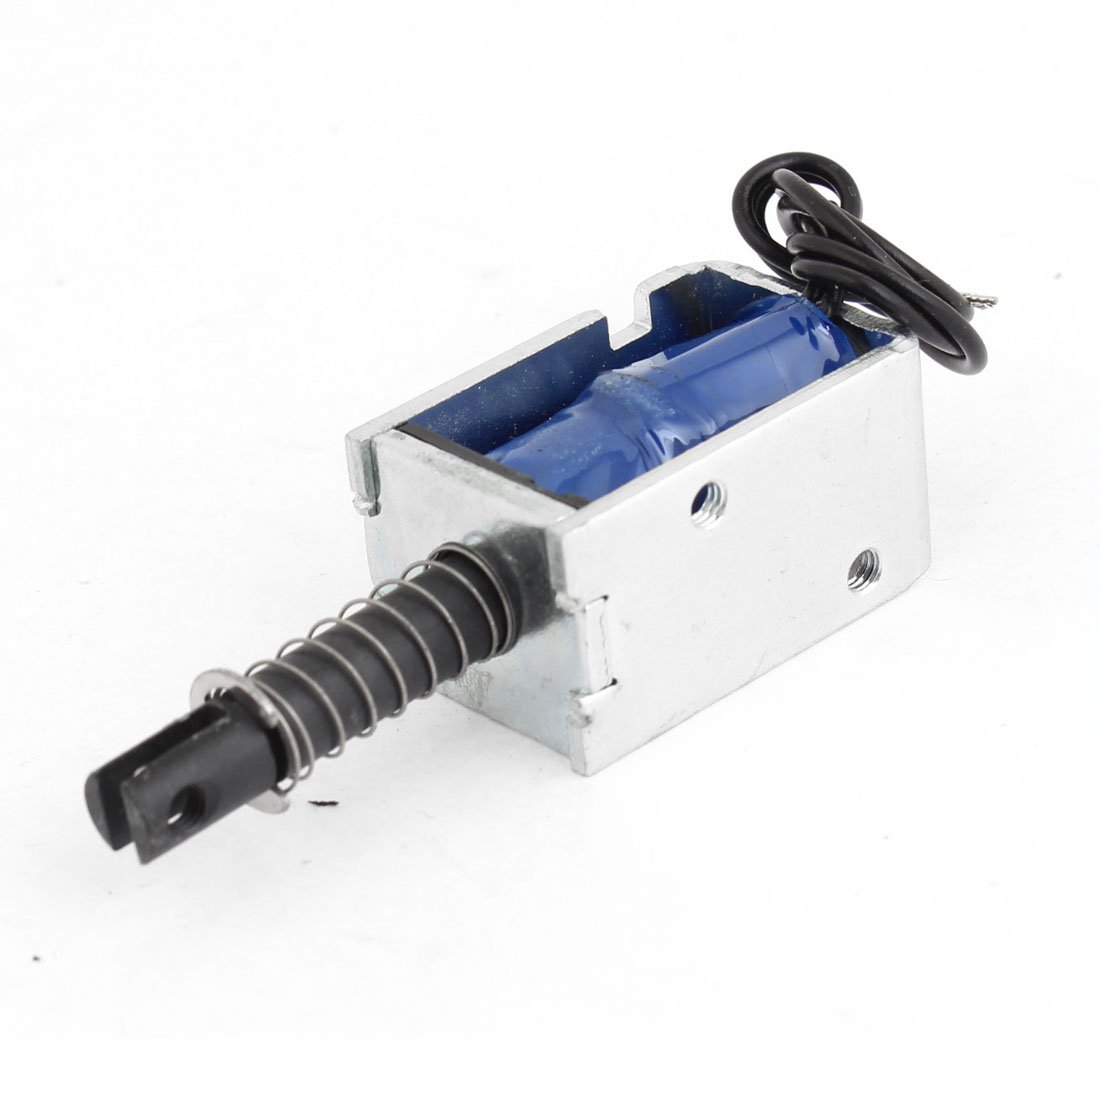 Uxcell a13072900ux1656 Open Frame Solenoid Electromagnet with Spring Plunger, 12VDC, 300 mA